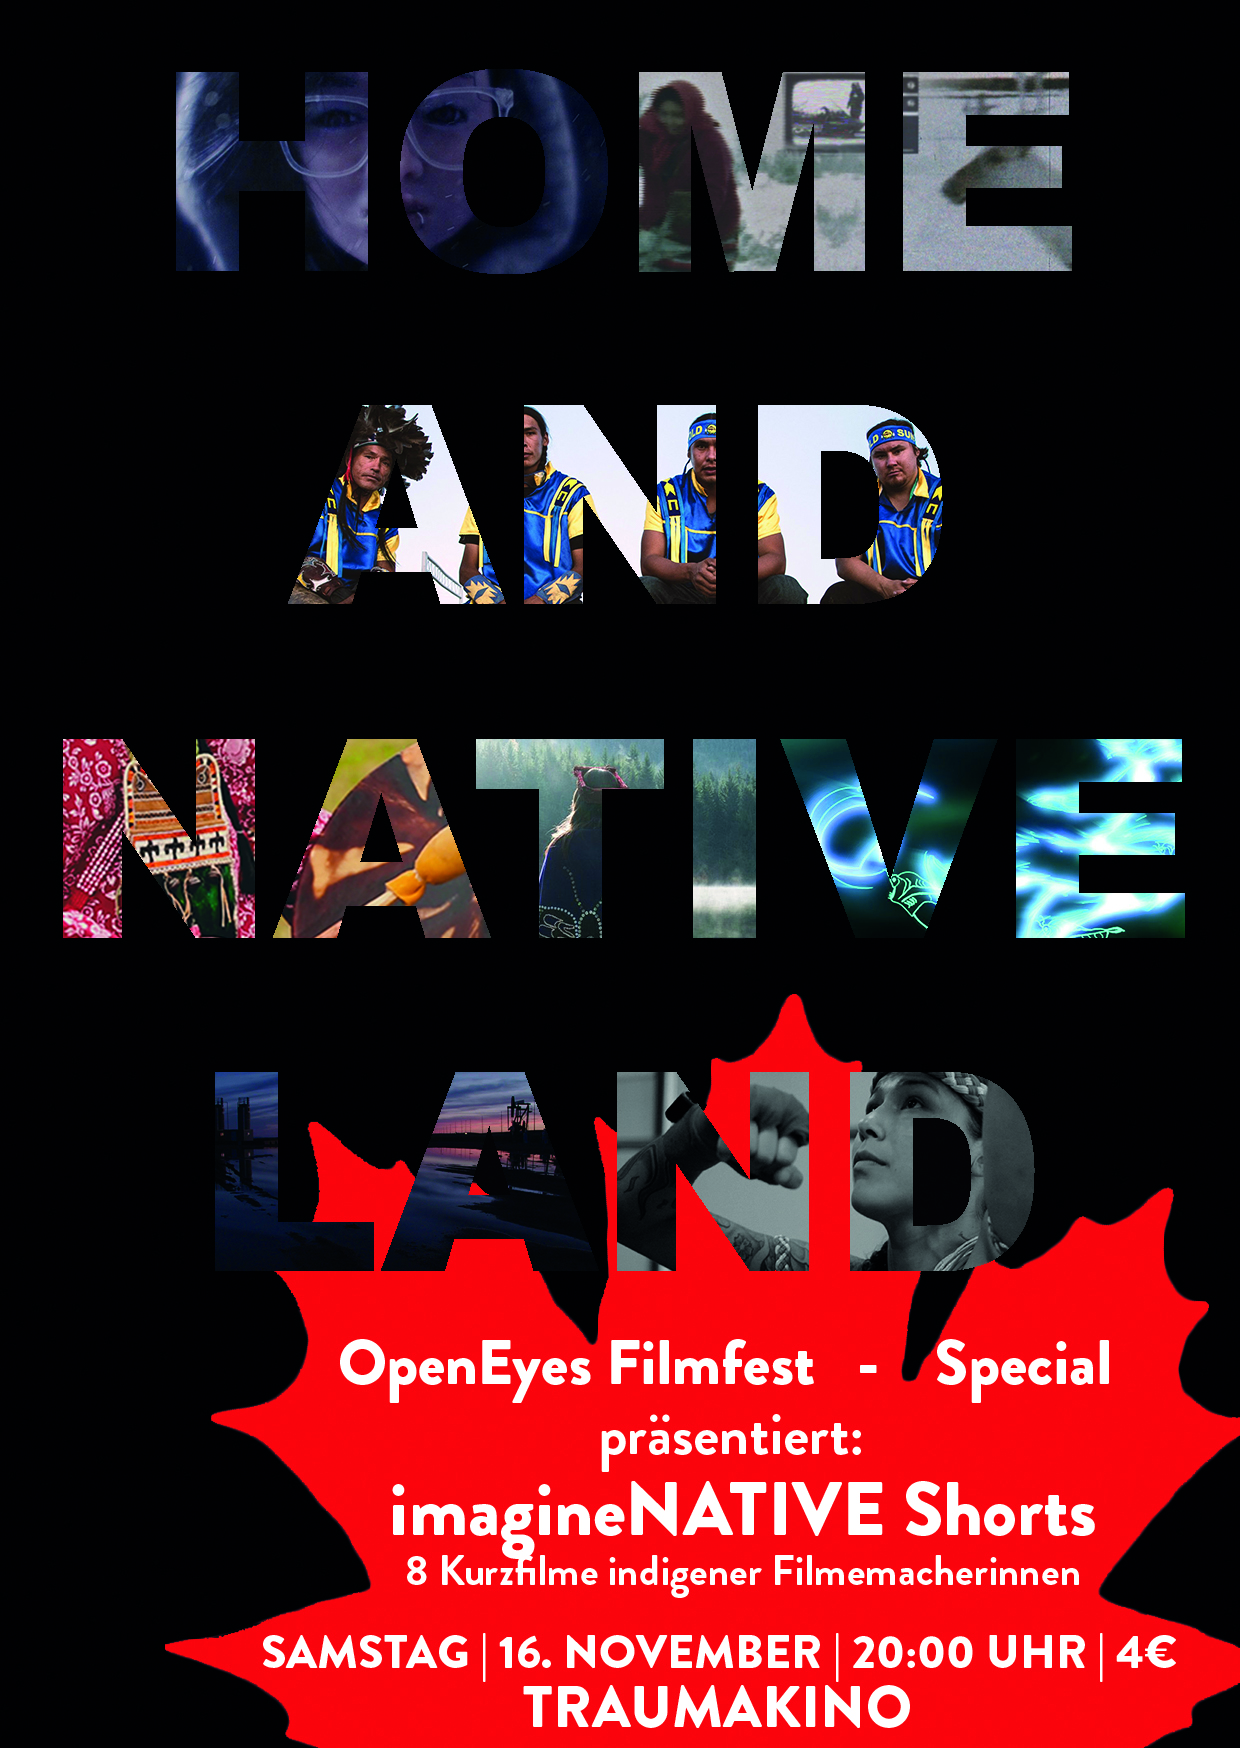 OpenEyes Filmfest - Special | imagineNATIVE Shorts - HOME AND NATIVE LAND